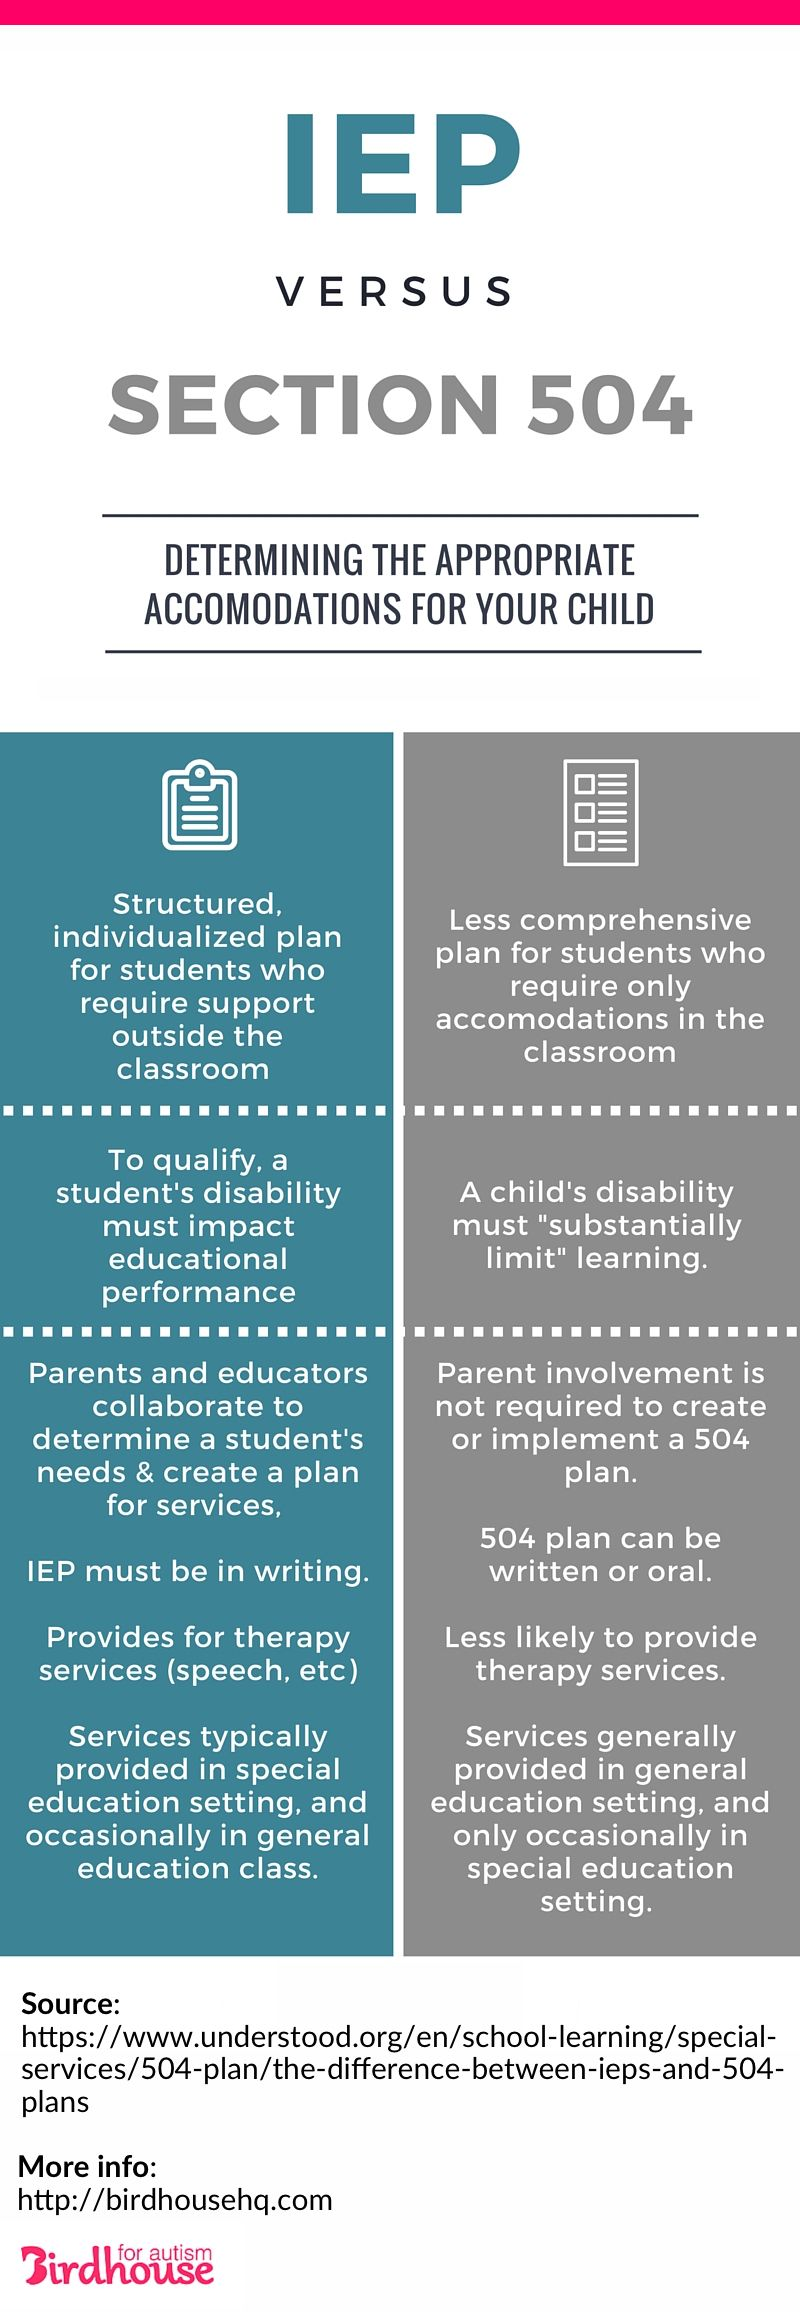 IEP vs Section 504 Plans Infographic Teaching special